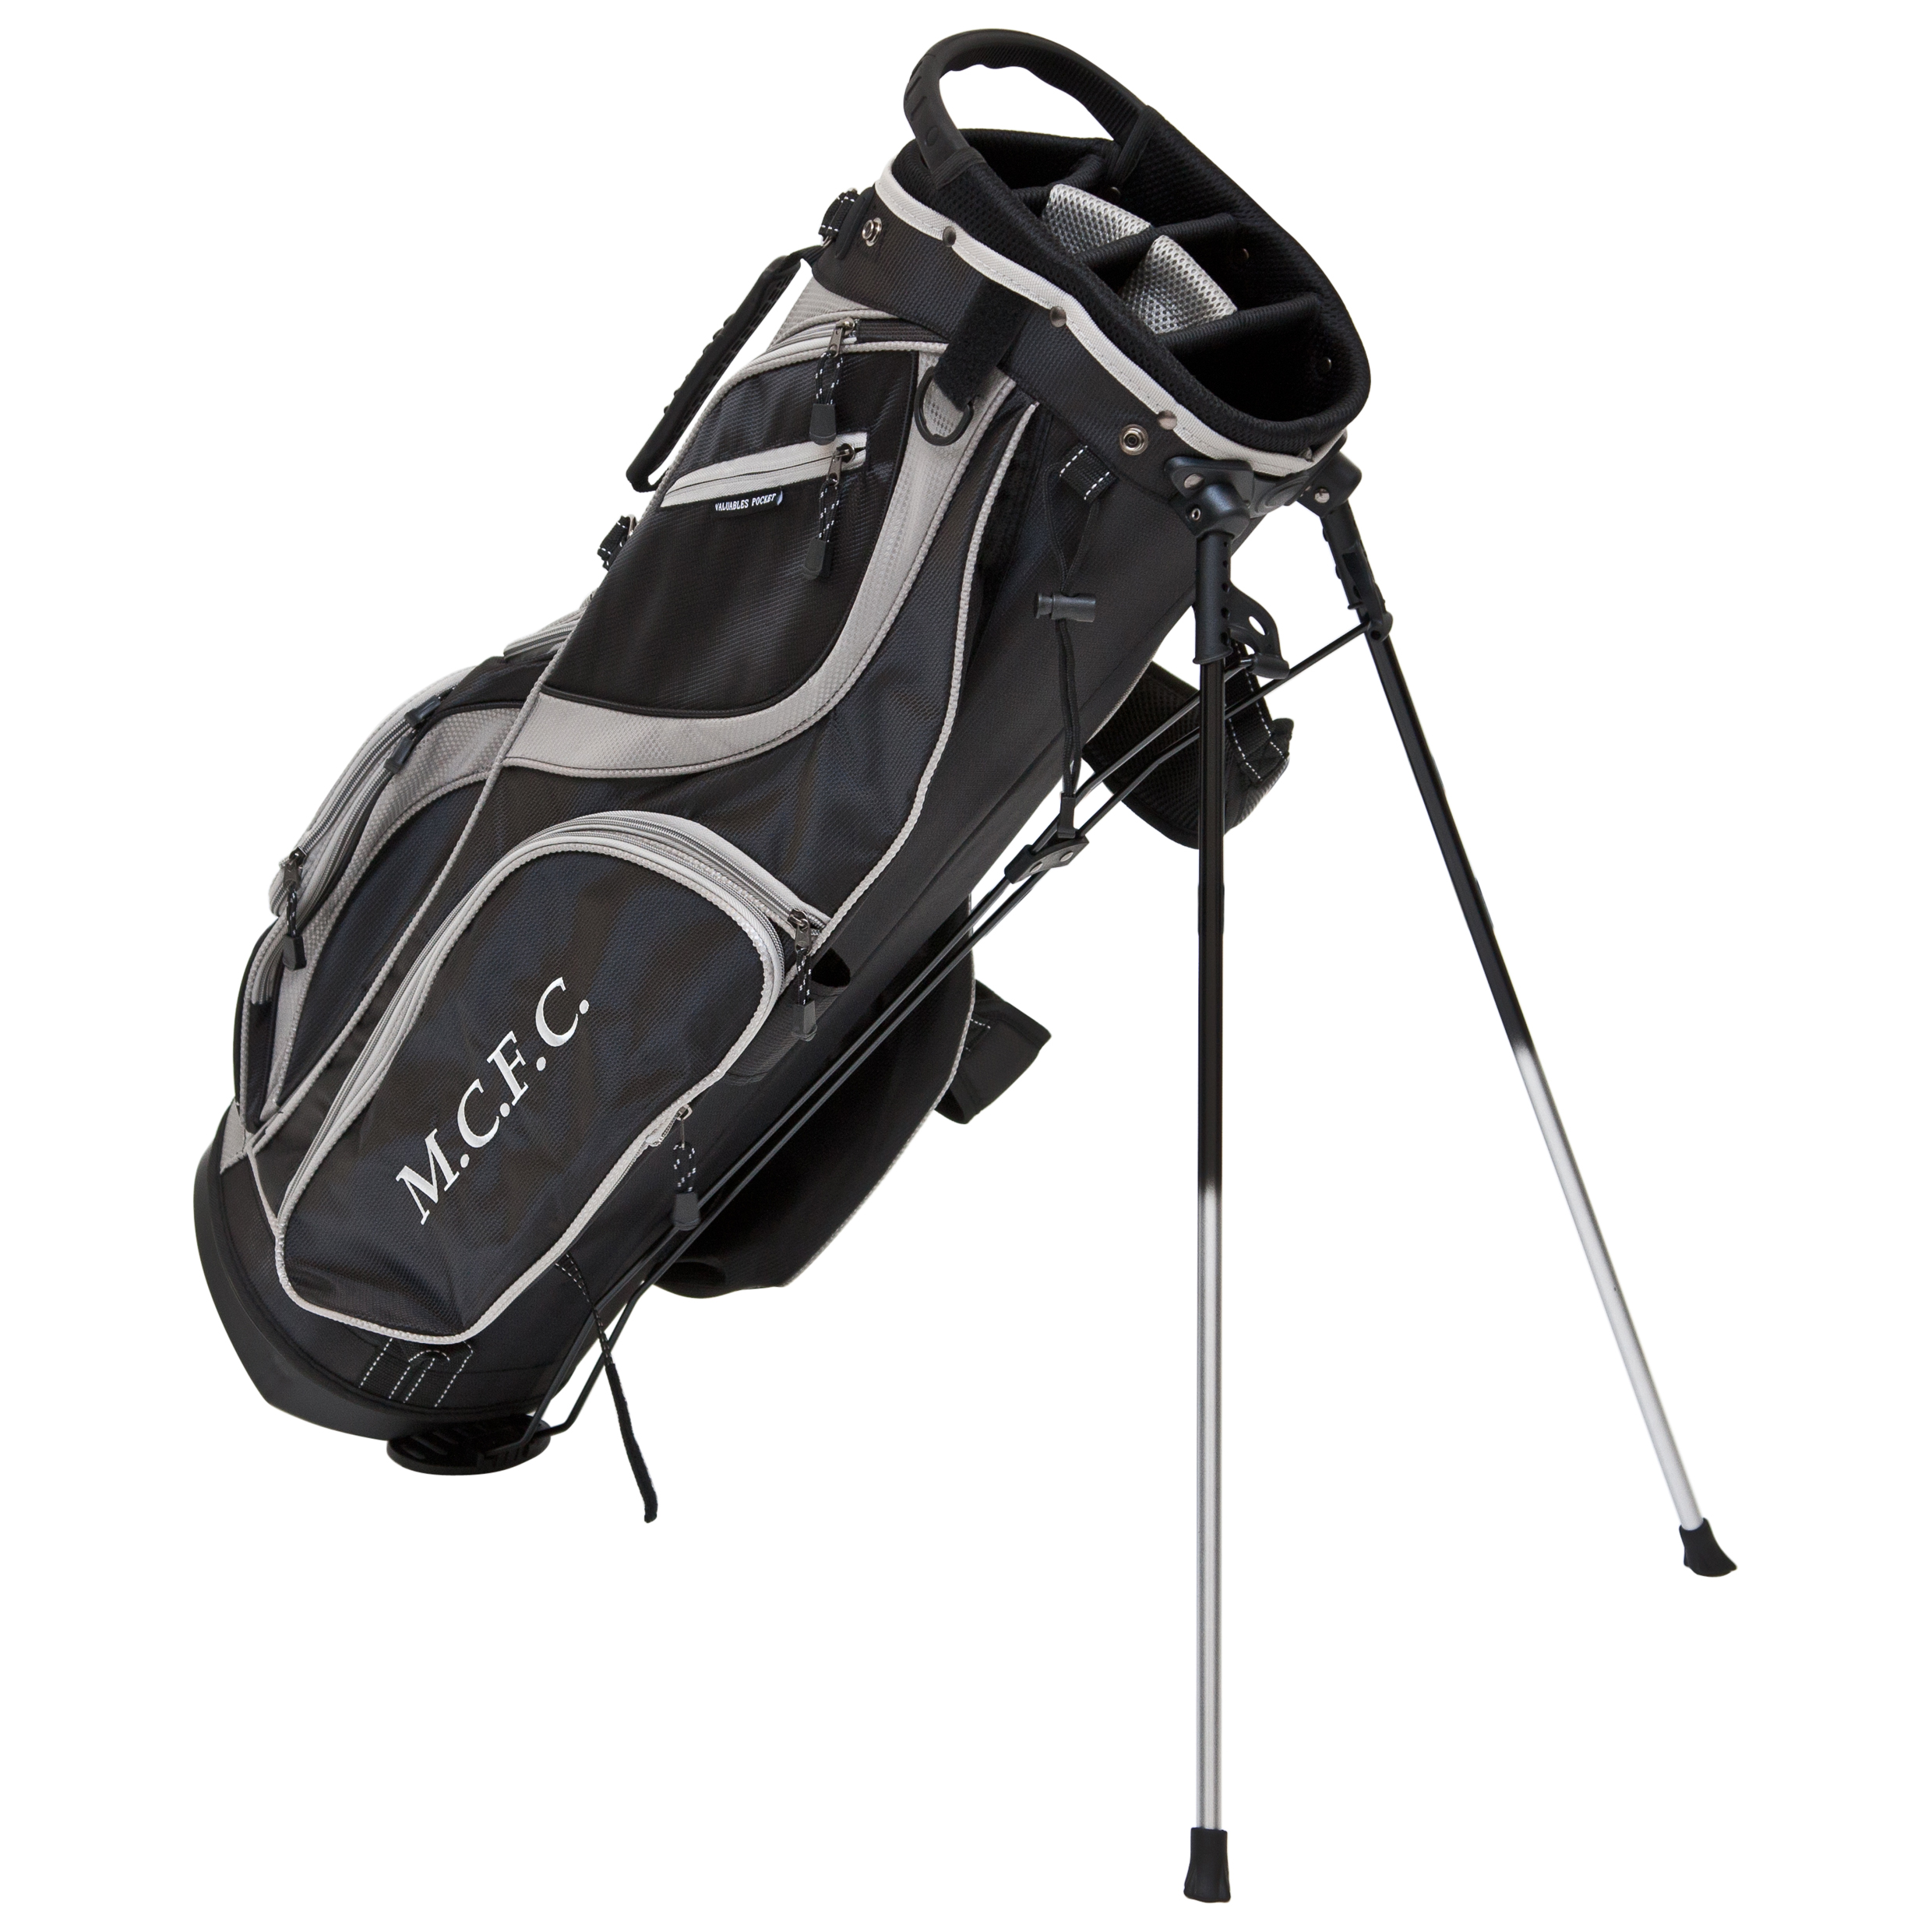 Manchester City Executive Golf Stand Bag - Black/Silver